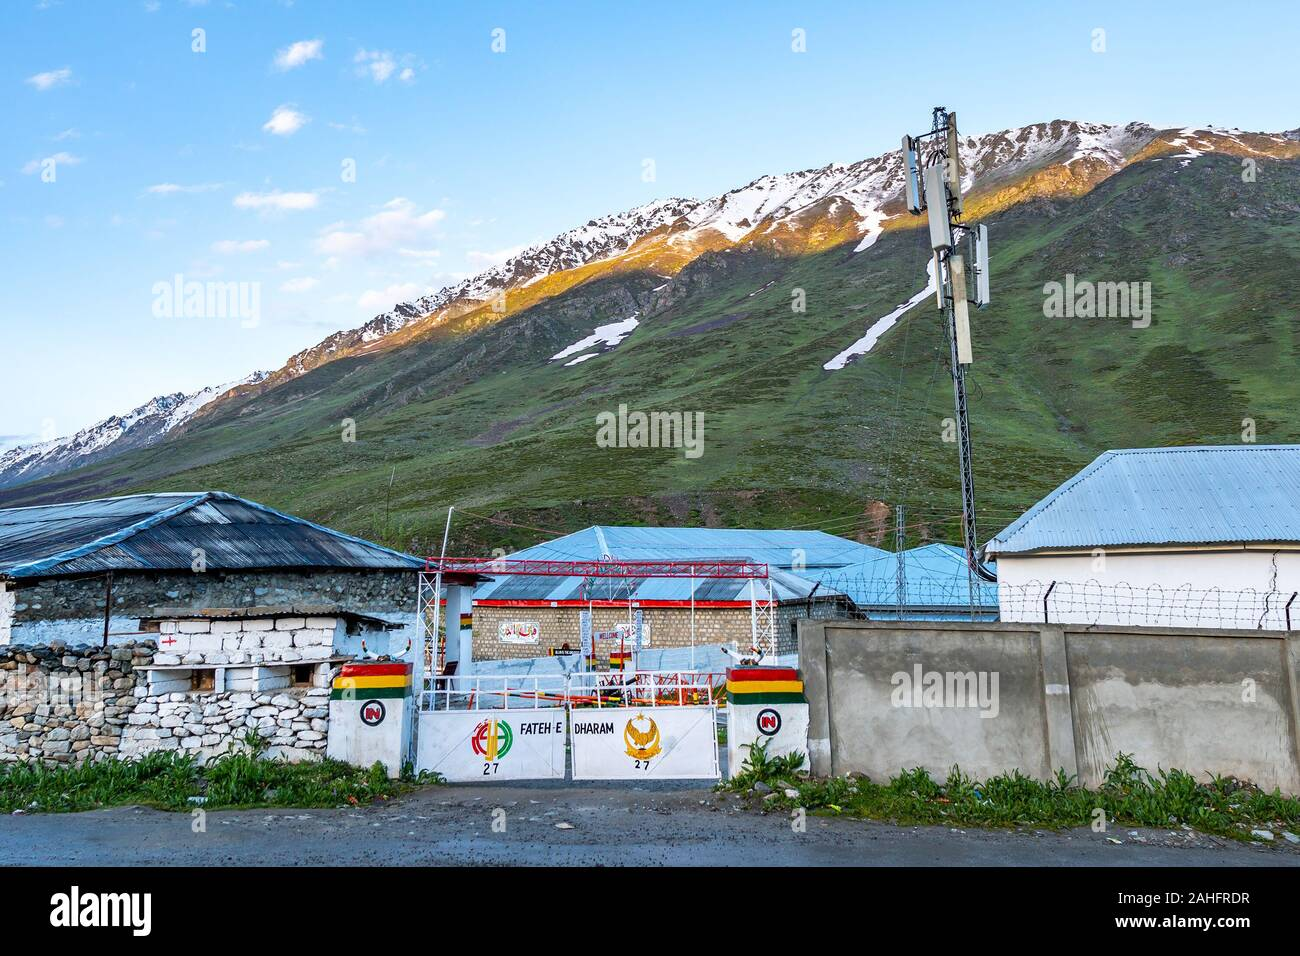 Deosai National Park Chilum Village Picturesque Breathtaking View of Military Camp in the Morning with Blue Sky Stock Photo